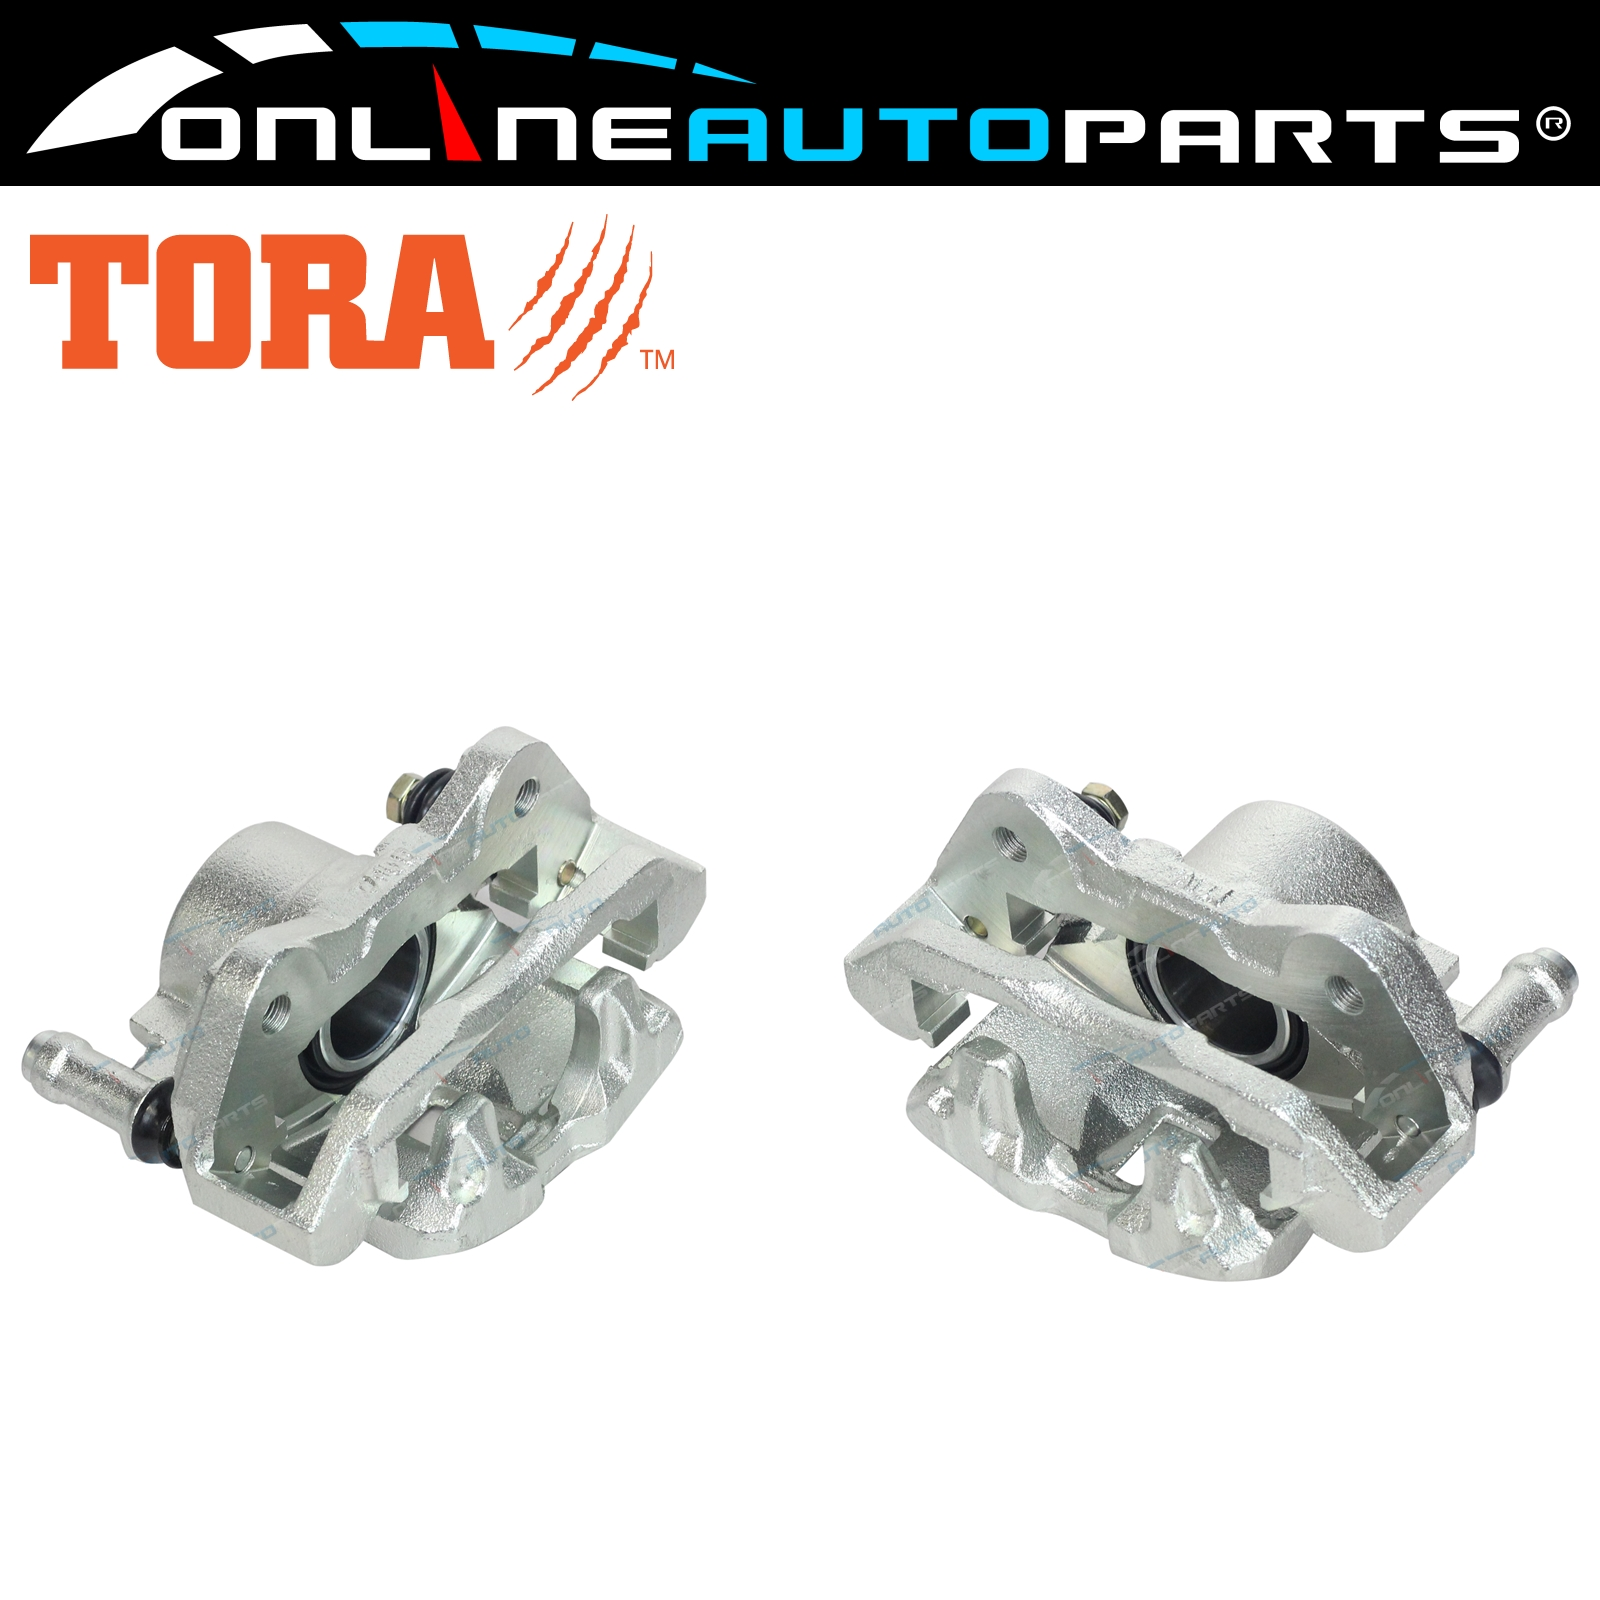 Details about LH & RH Front Brake Caliper Set Holden Rodeo TFS55 4cyl 2 8L  1990~03 Diesel 4X4